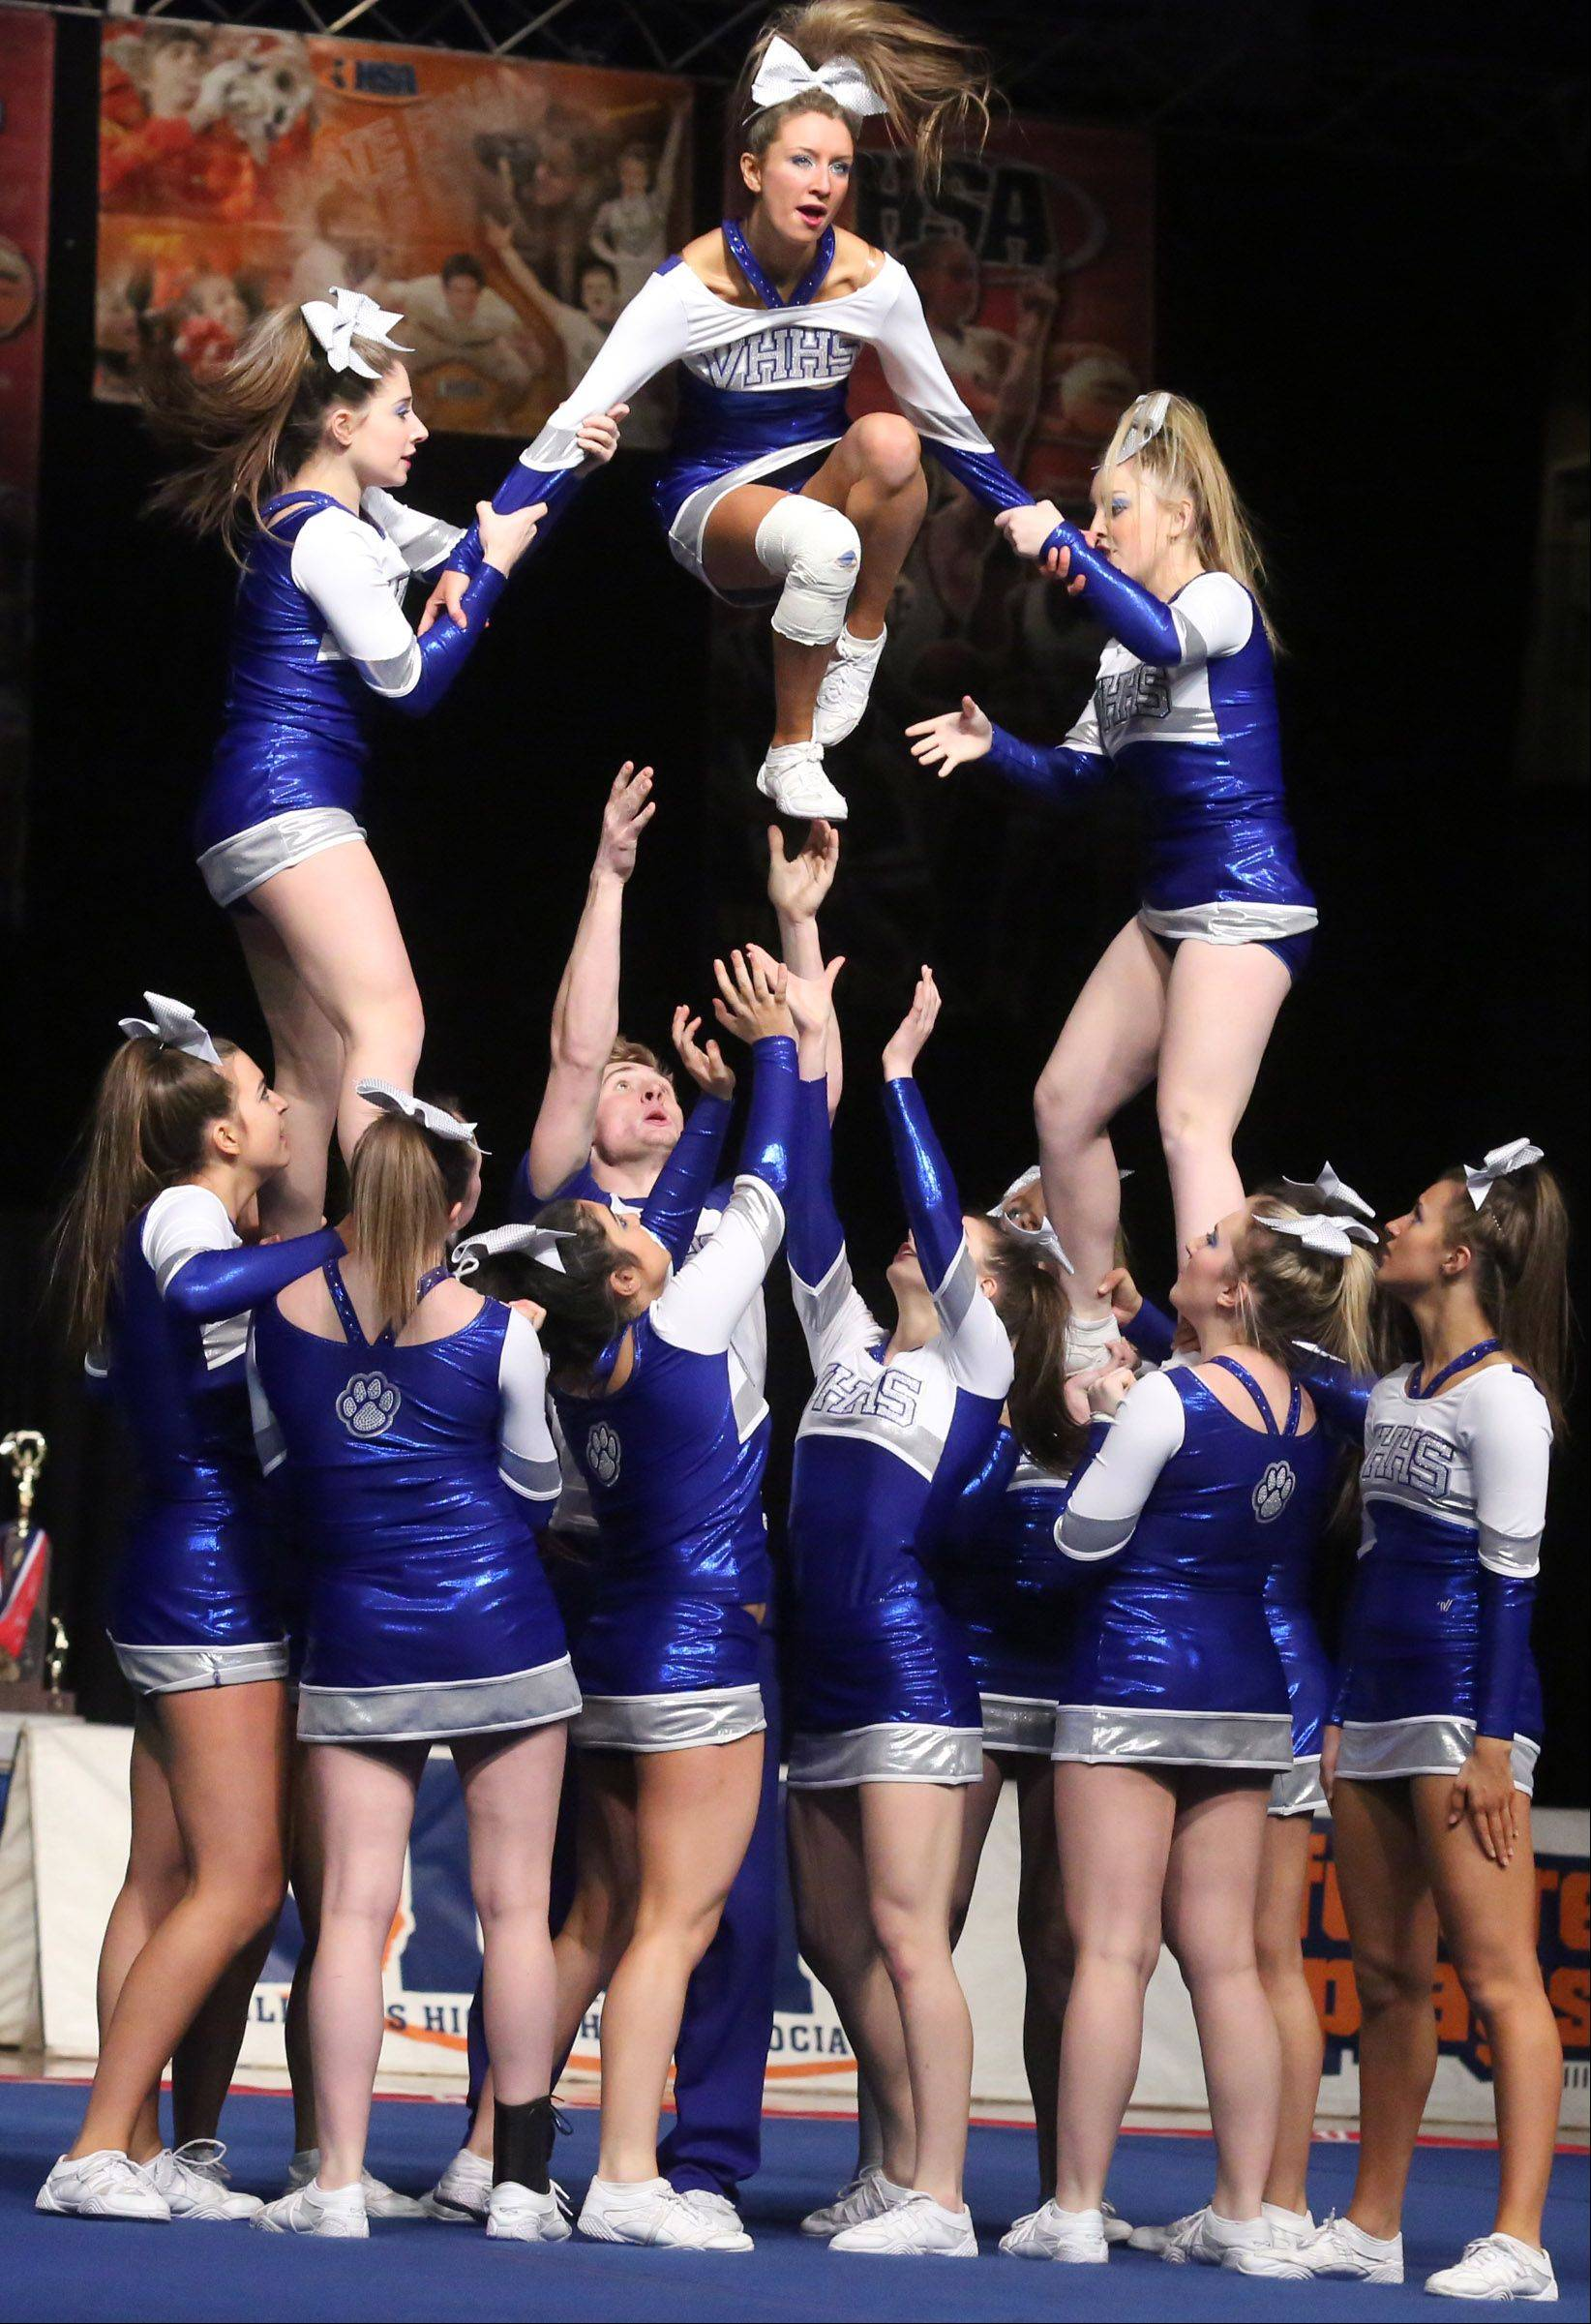 Vernon Hills High School's cheer team performs in the medium team category.